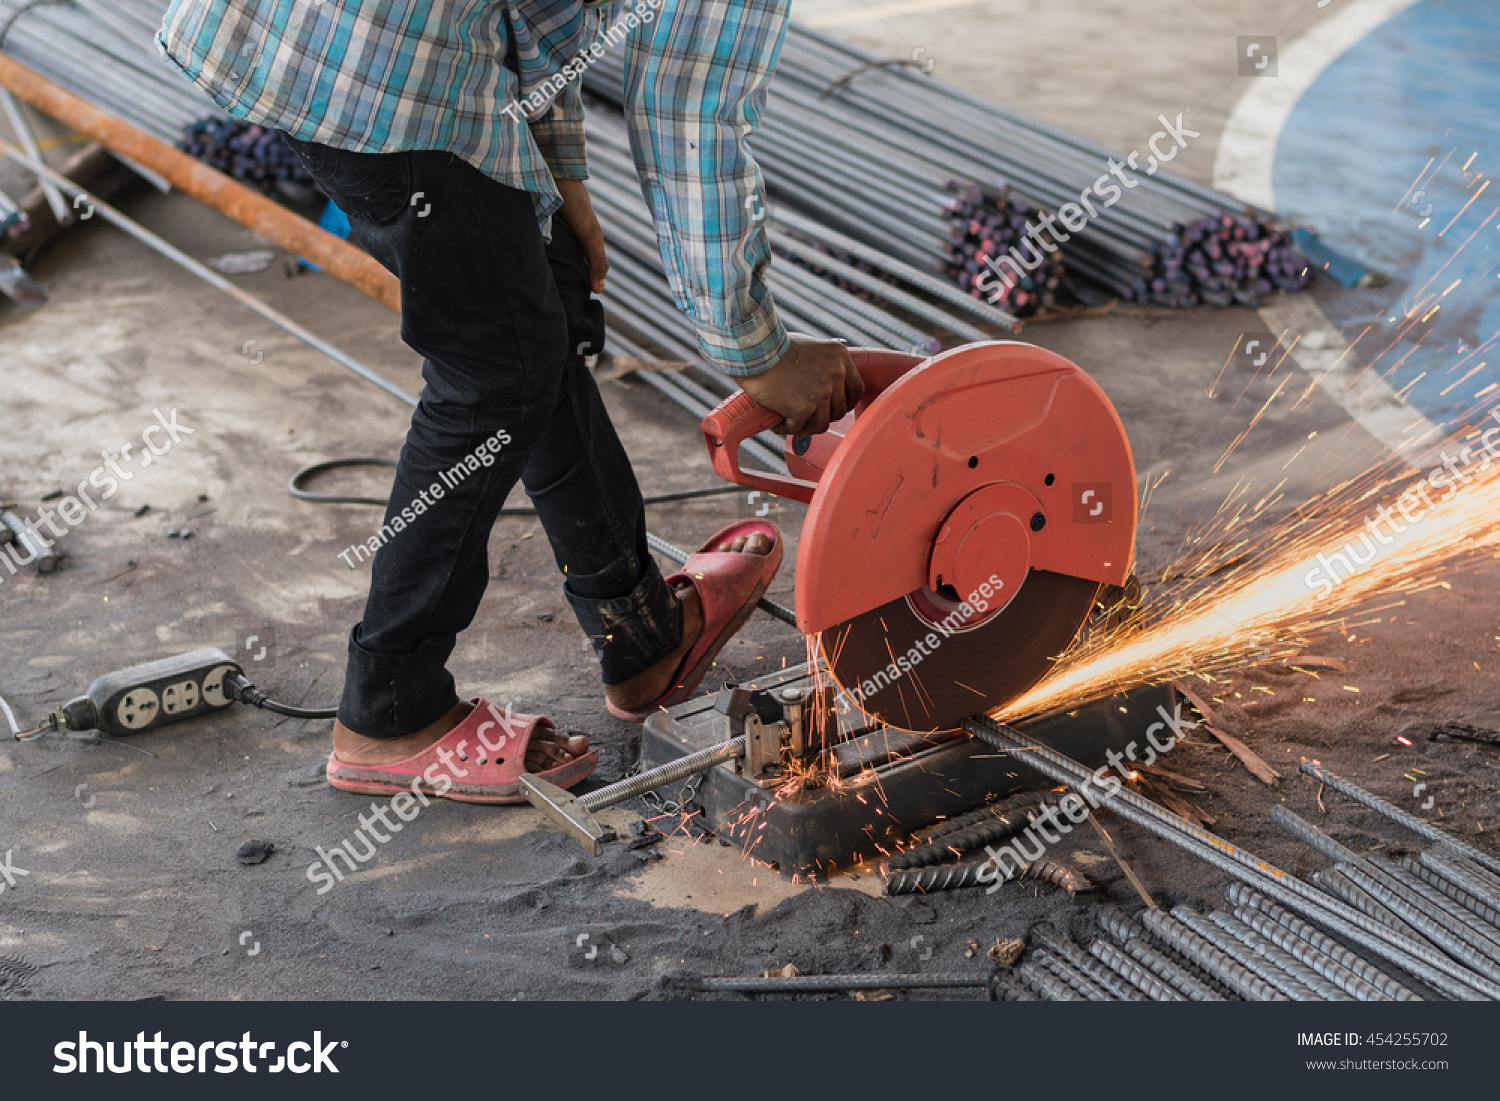 Buildings In A Cement Grinding Mill : Construction builder worker grinder machine cutting stock